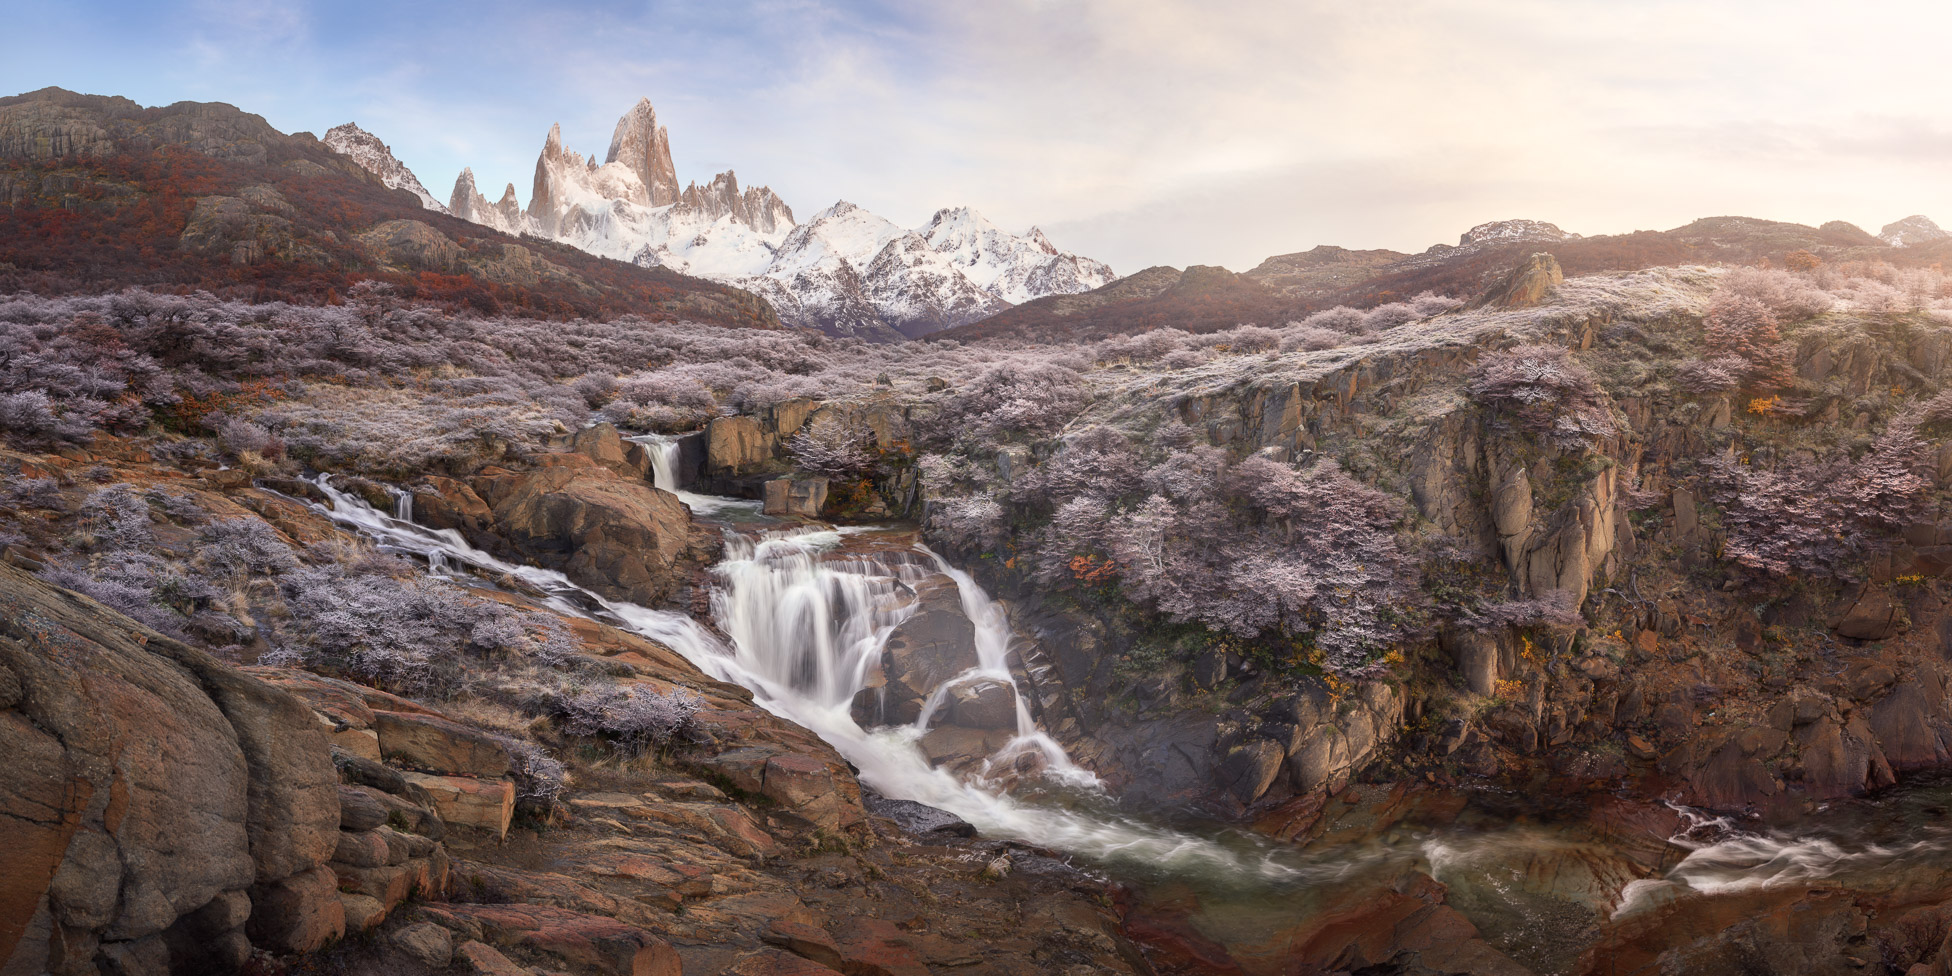 Panorama of Rio De la Cascada and Fitz Roy in the Morning, Los Glaciares National Park, Argentina